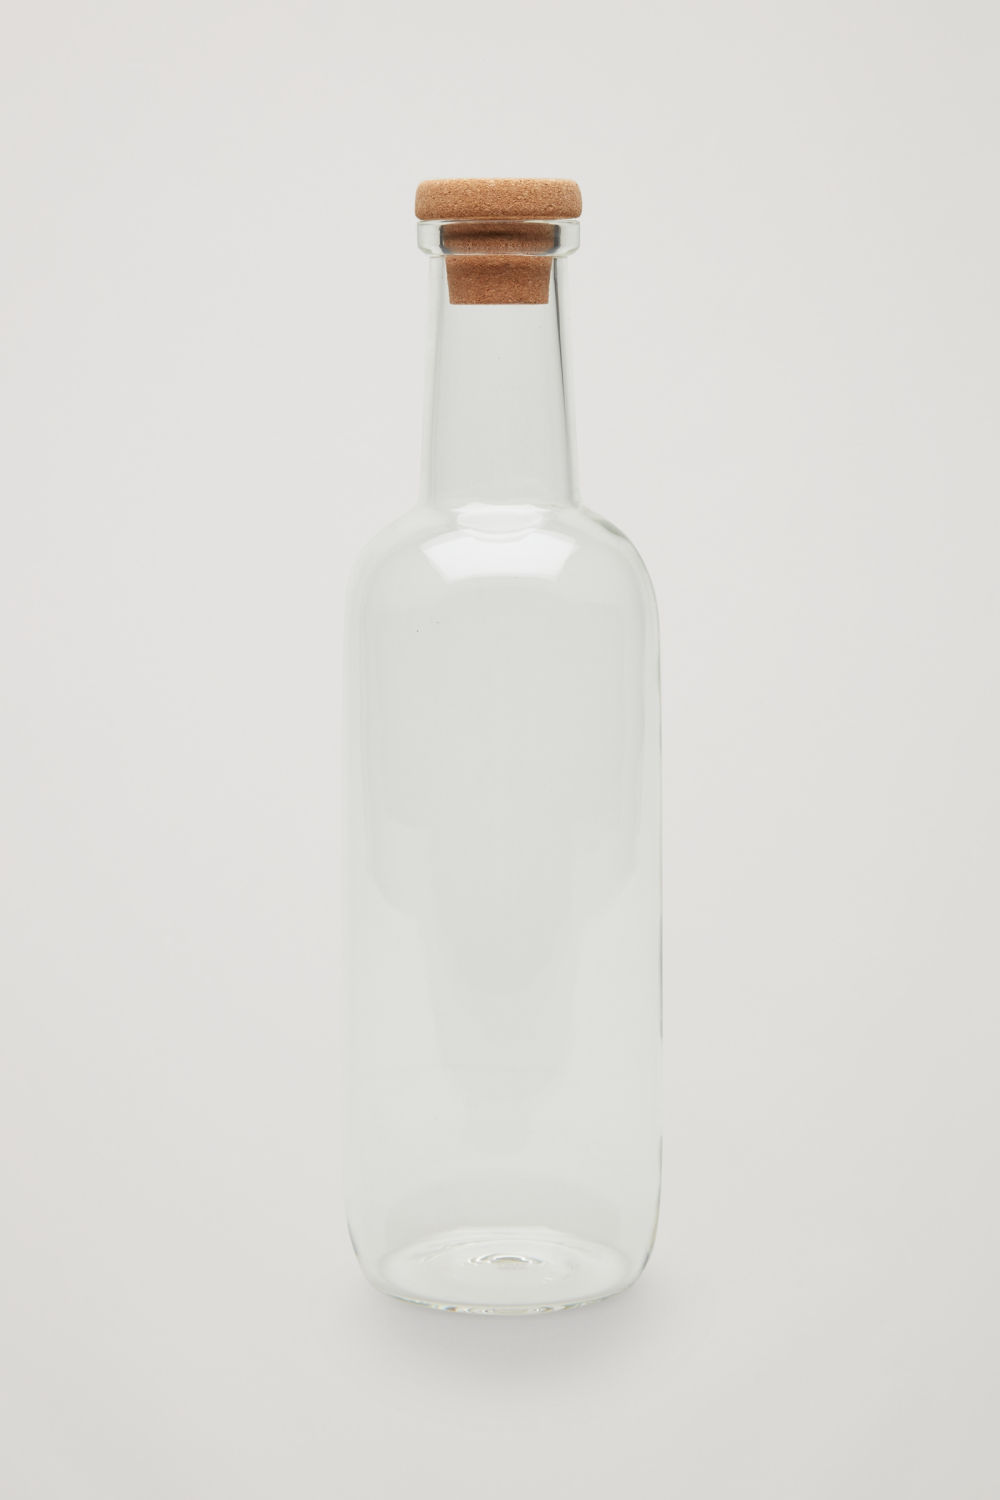 HAY SMALL GLASS BOTTLE